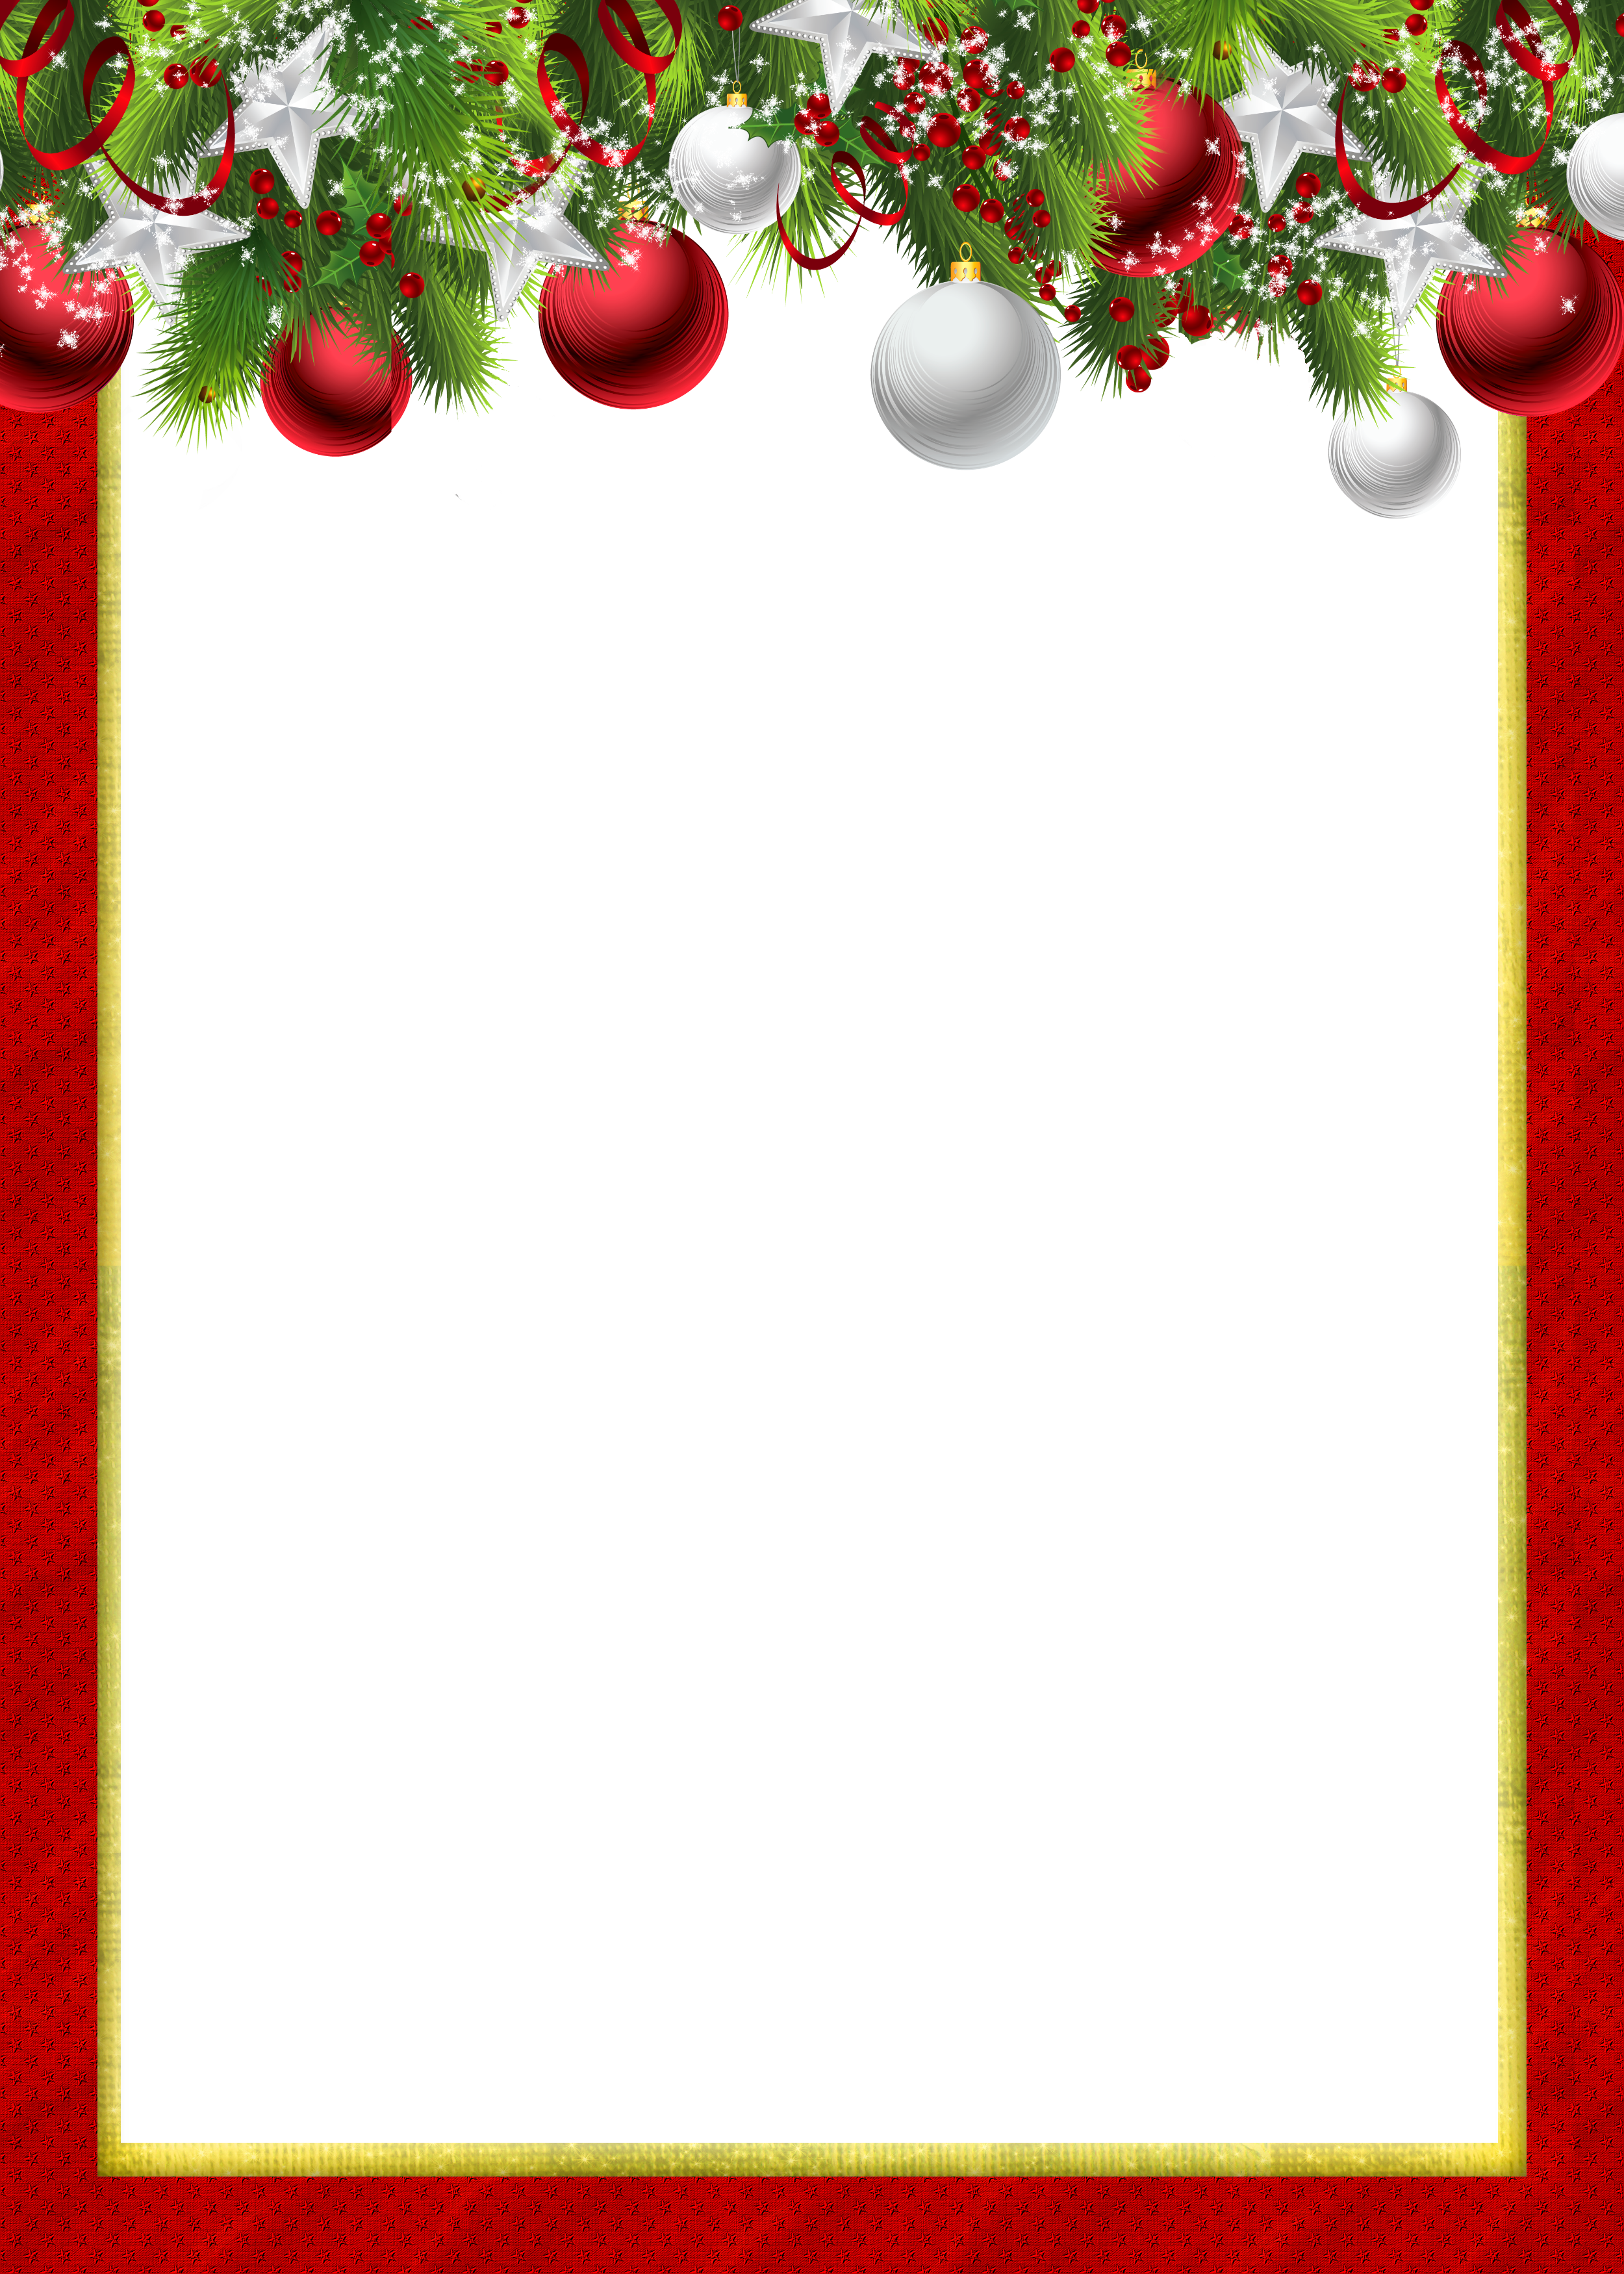 Red Transparent PNG Christmas Photo Frame with Christmas Balls ...